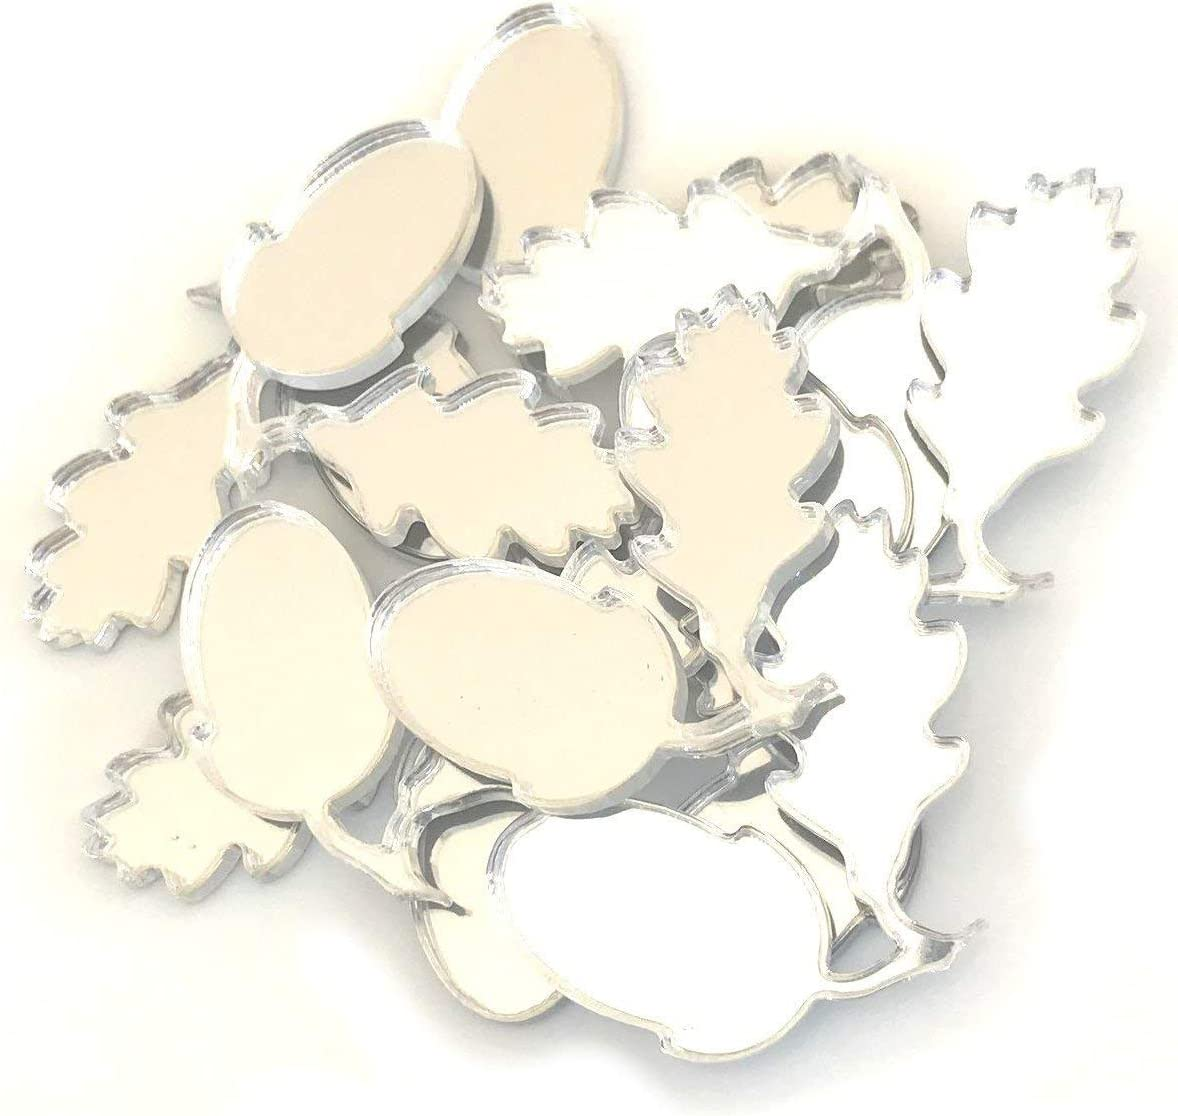 Super Cool Creations Acorn Shaped Crafting Set M Long Max 73% OFF Beach Mall 10 Mirrors of